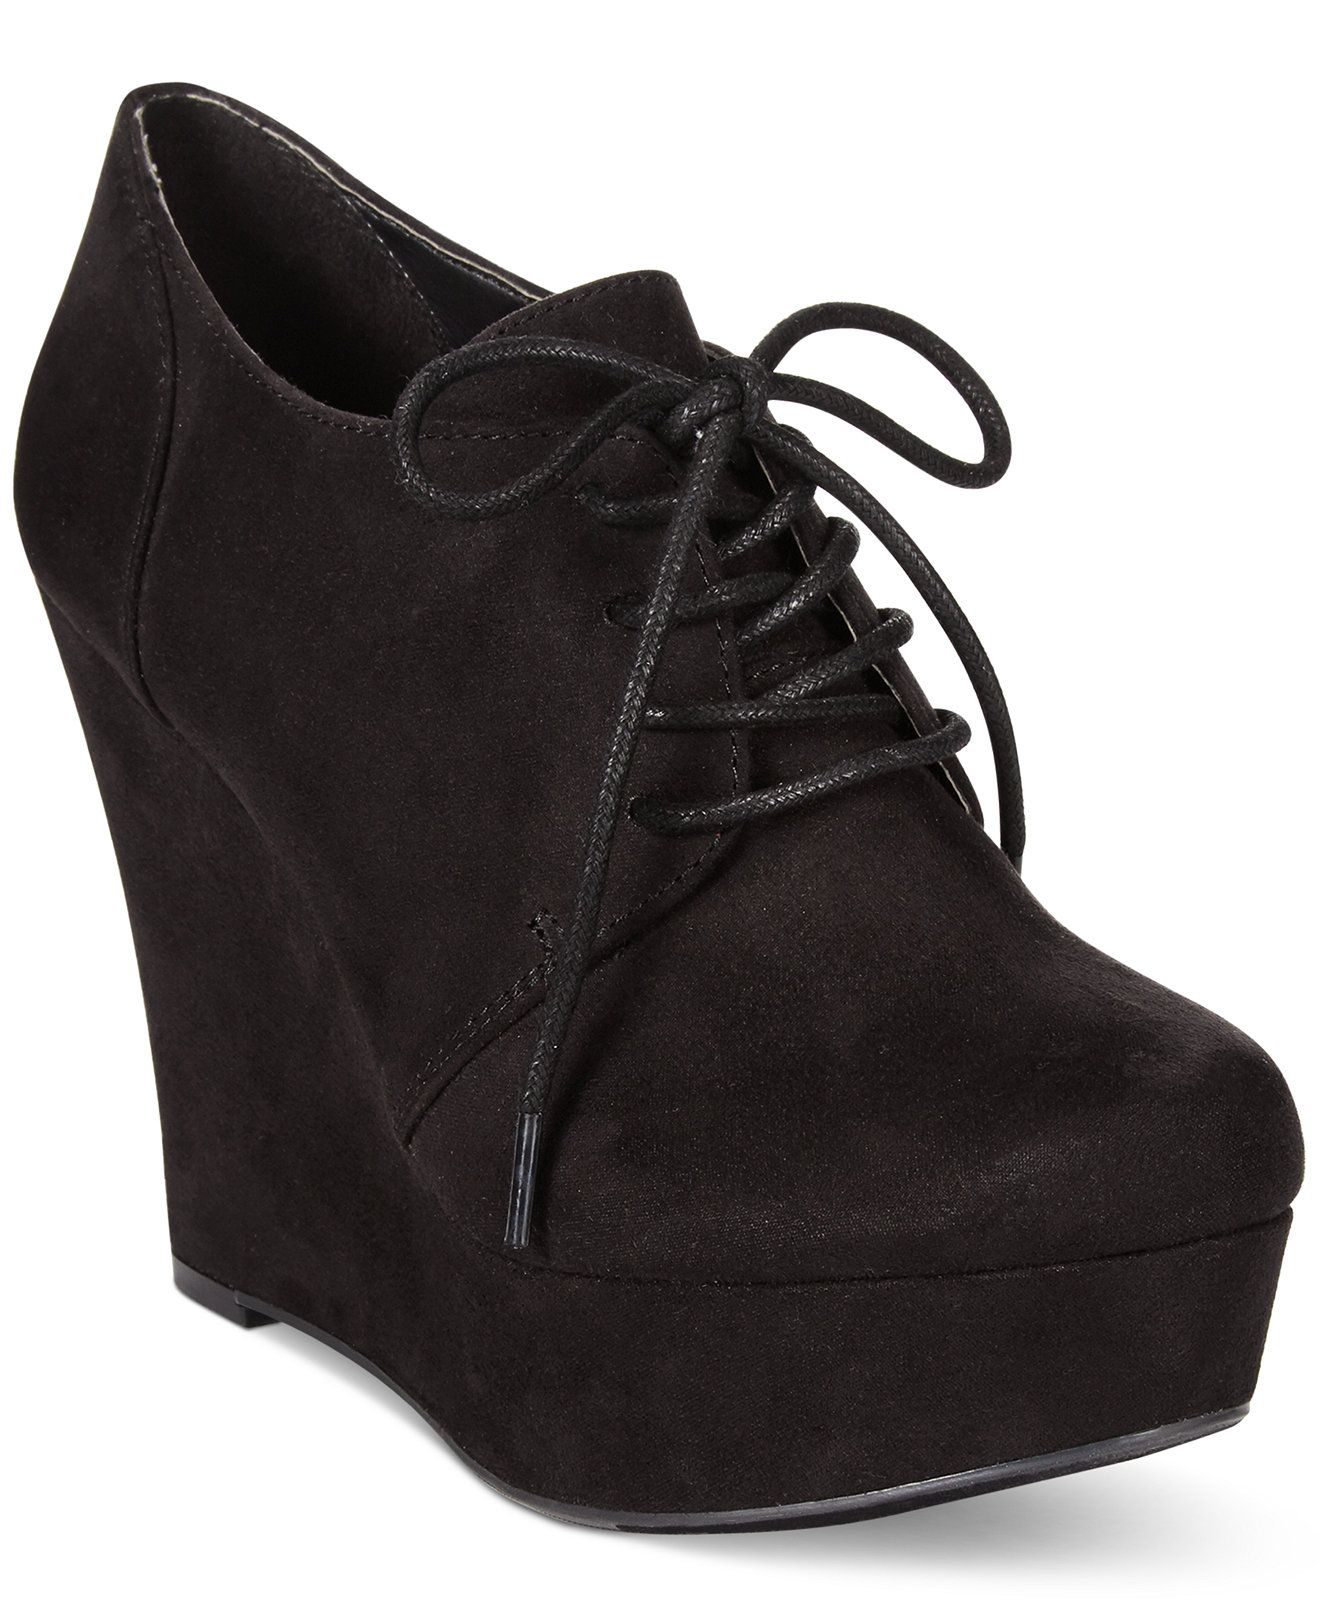 1e250cd1a87 Material Girl Danity Lace Up Platform Wedge Booties